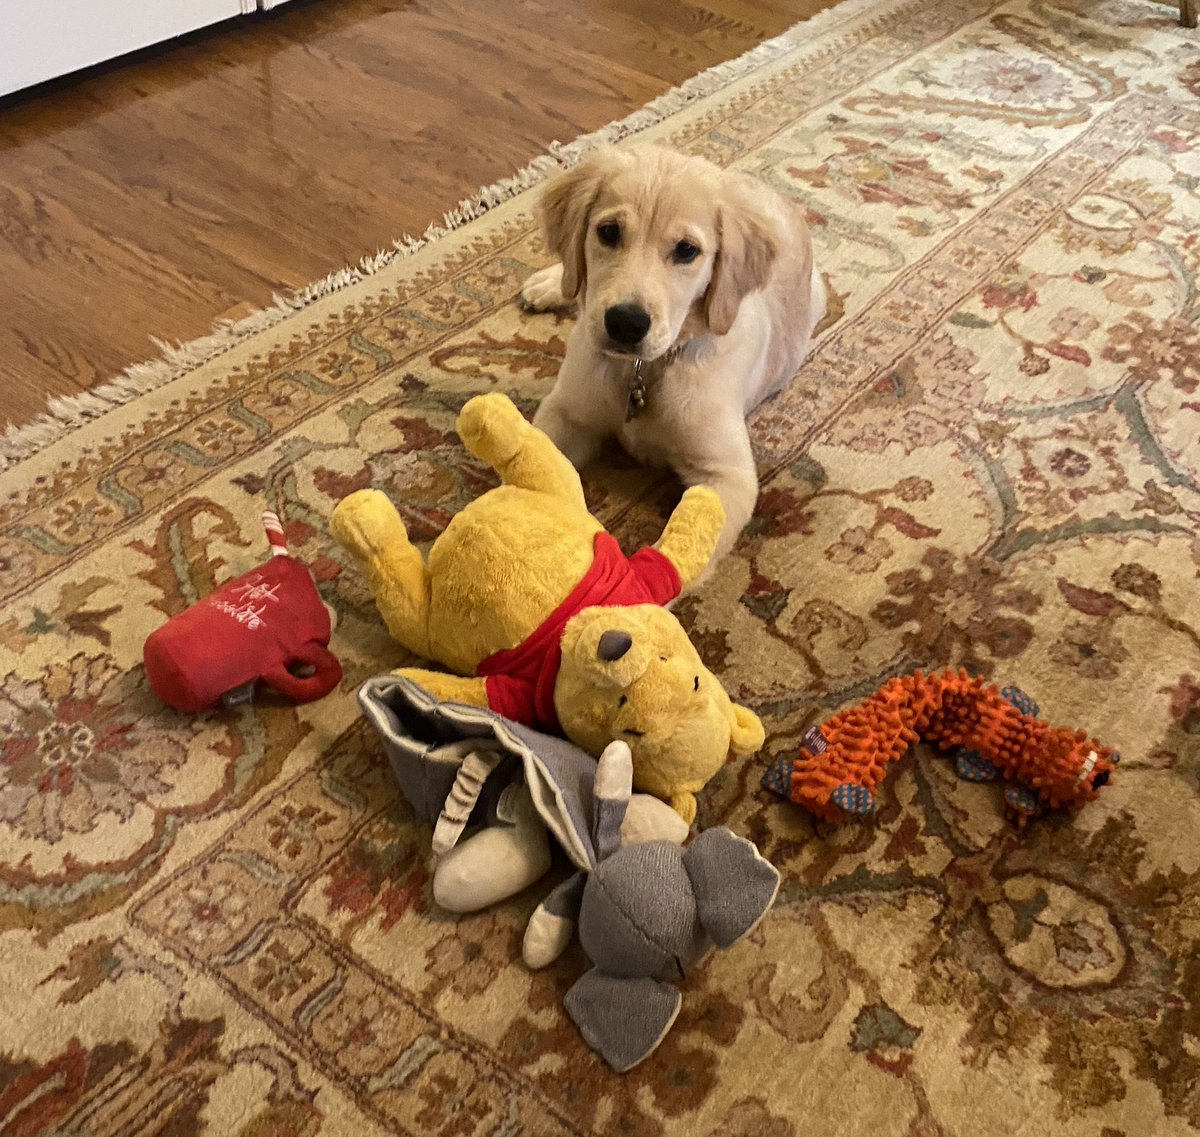 Mercer and all of her favorite toys! 🐶 https://t.co/bGal0ui6E2